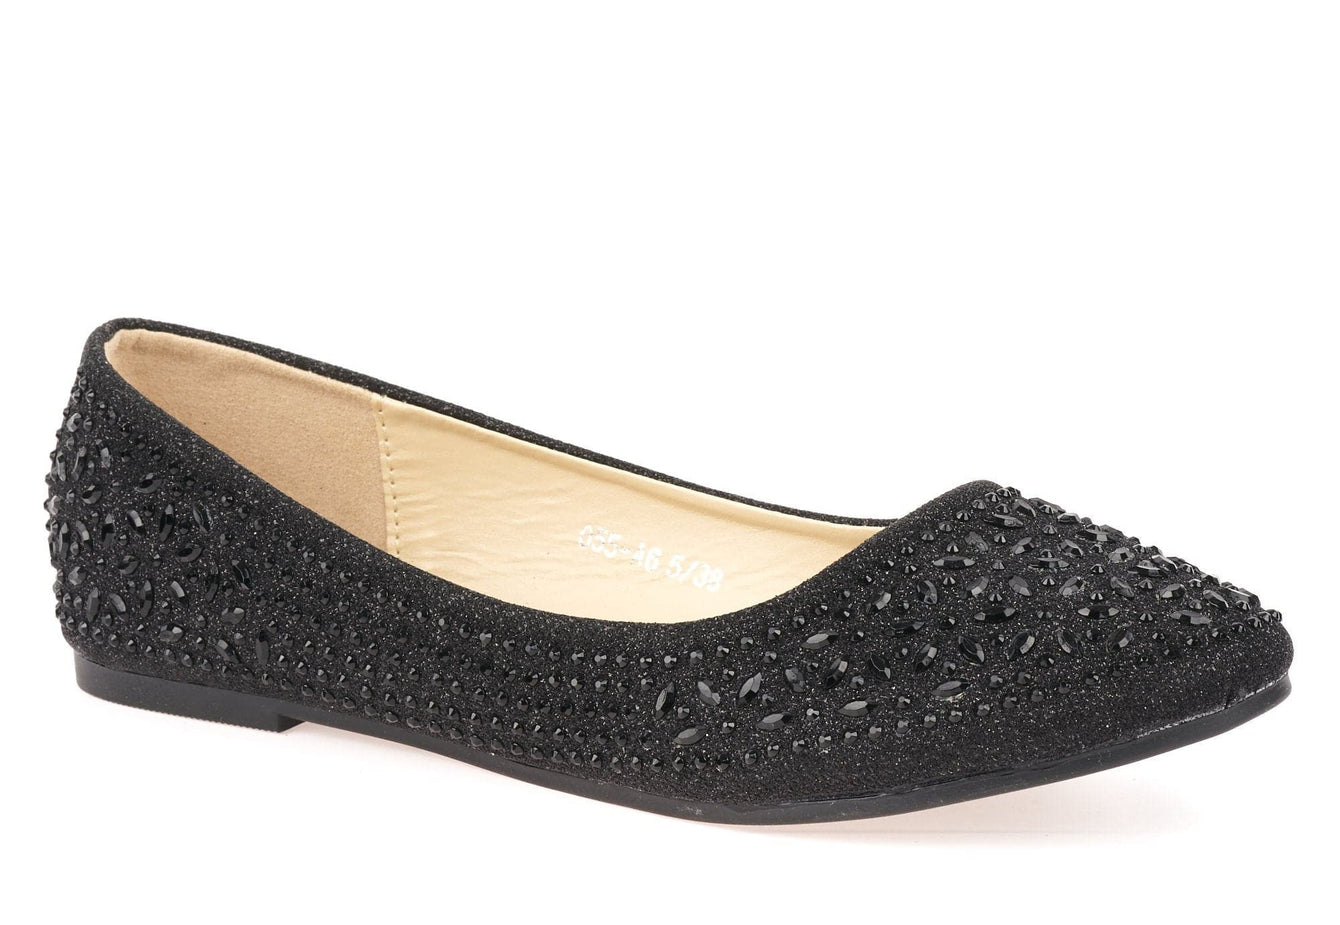 Round Toe Stone Encrusted Pump in Black